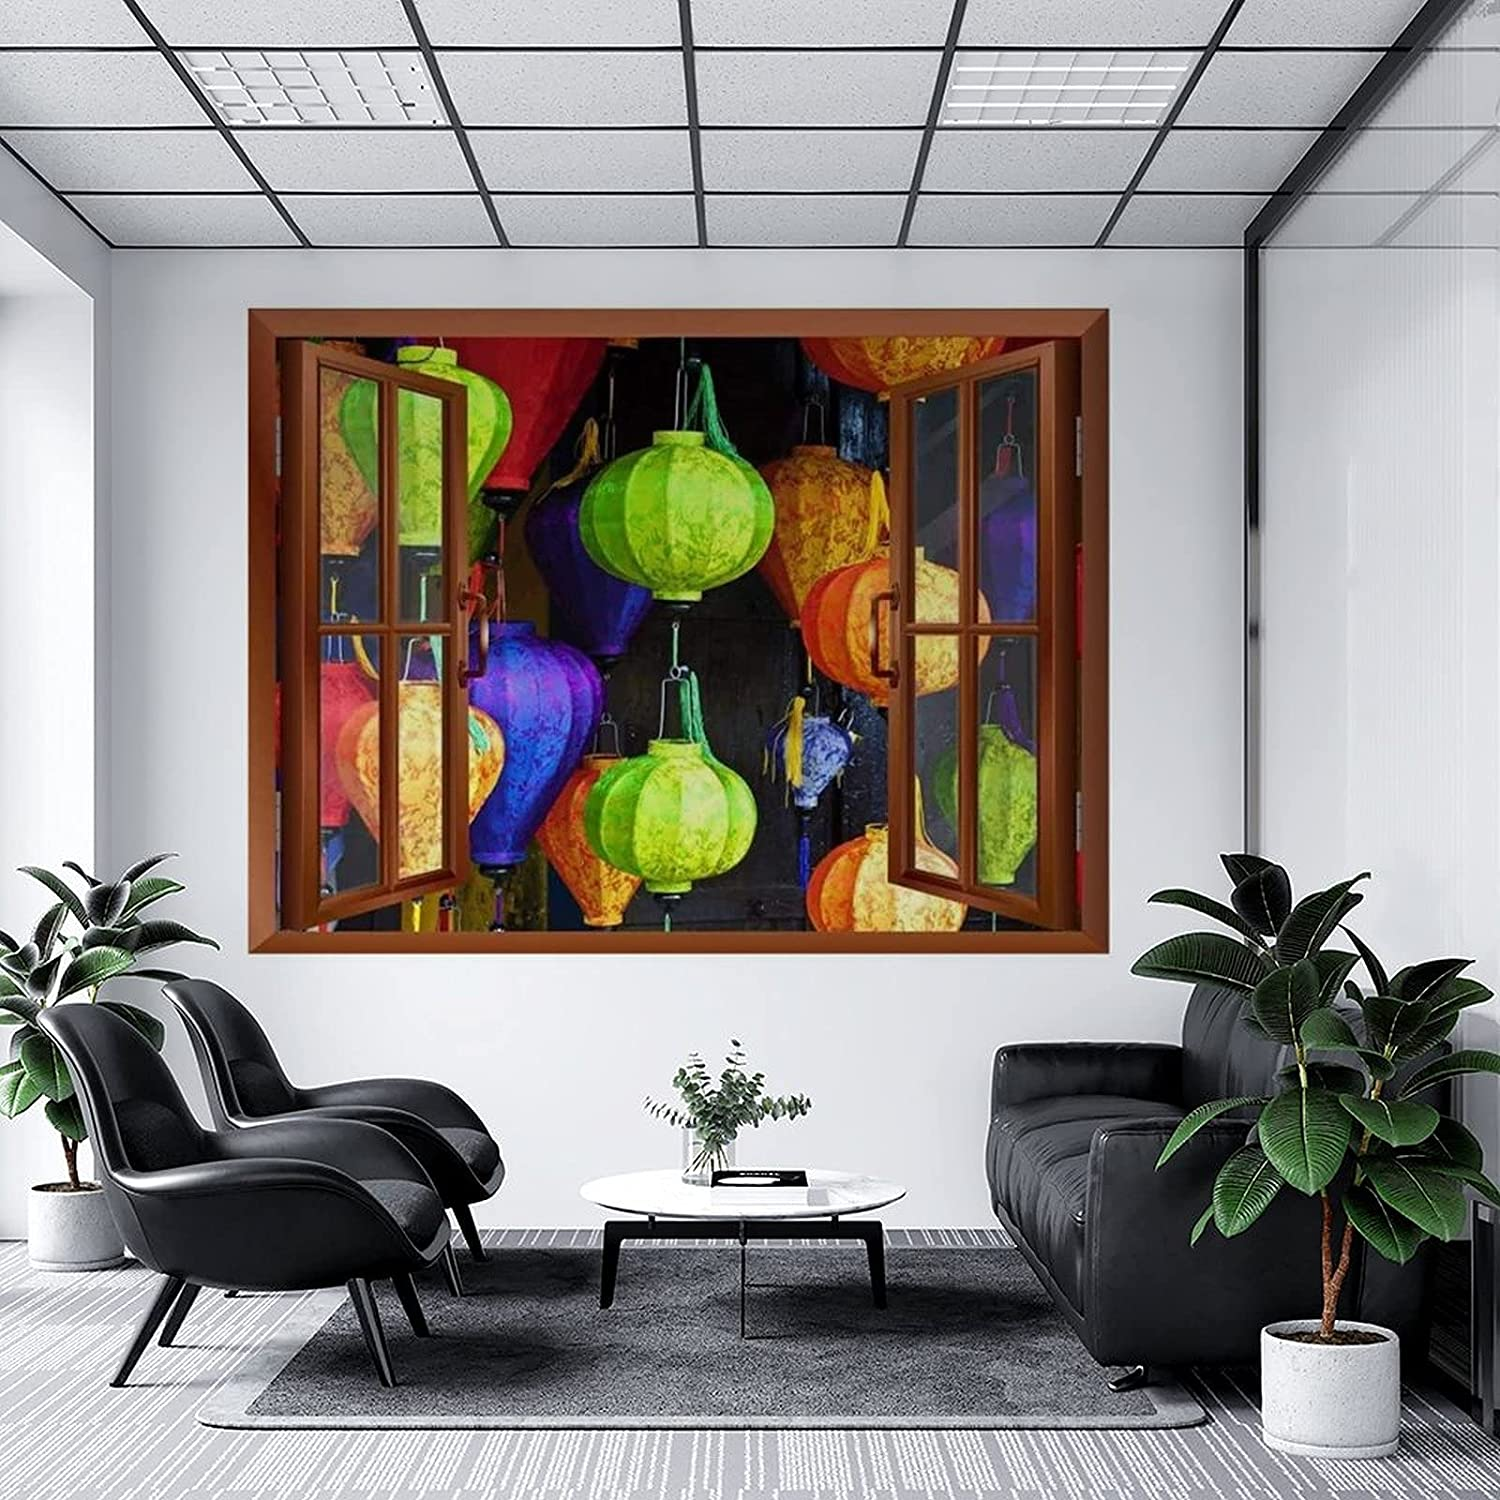 Max 61% OFF Open Window Wall Mural Colorful Lanterns Windo Fake 3D Japanese Today's only